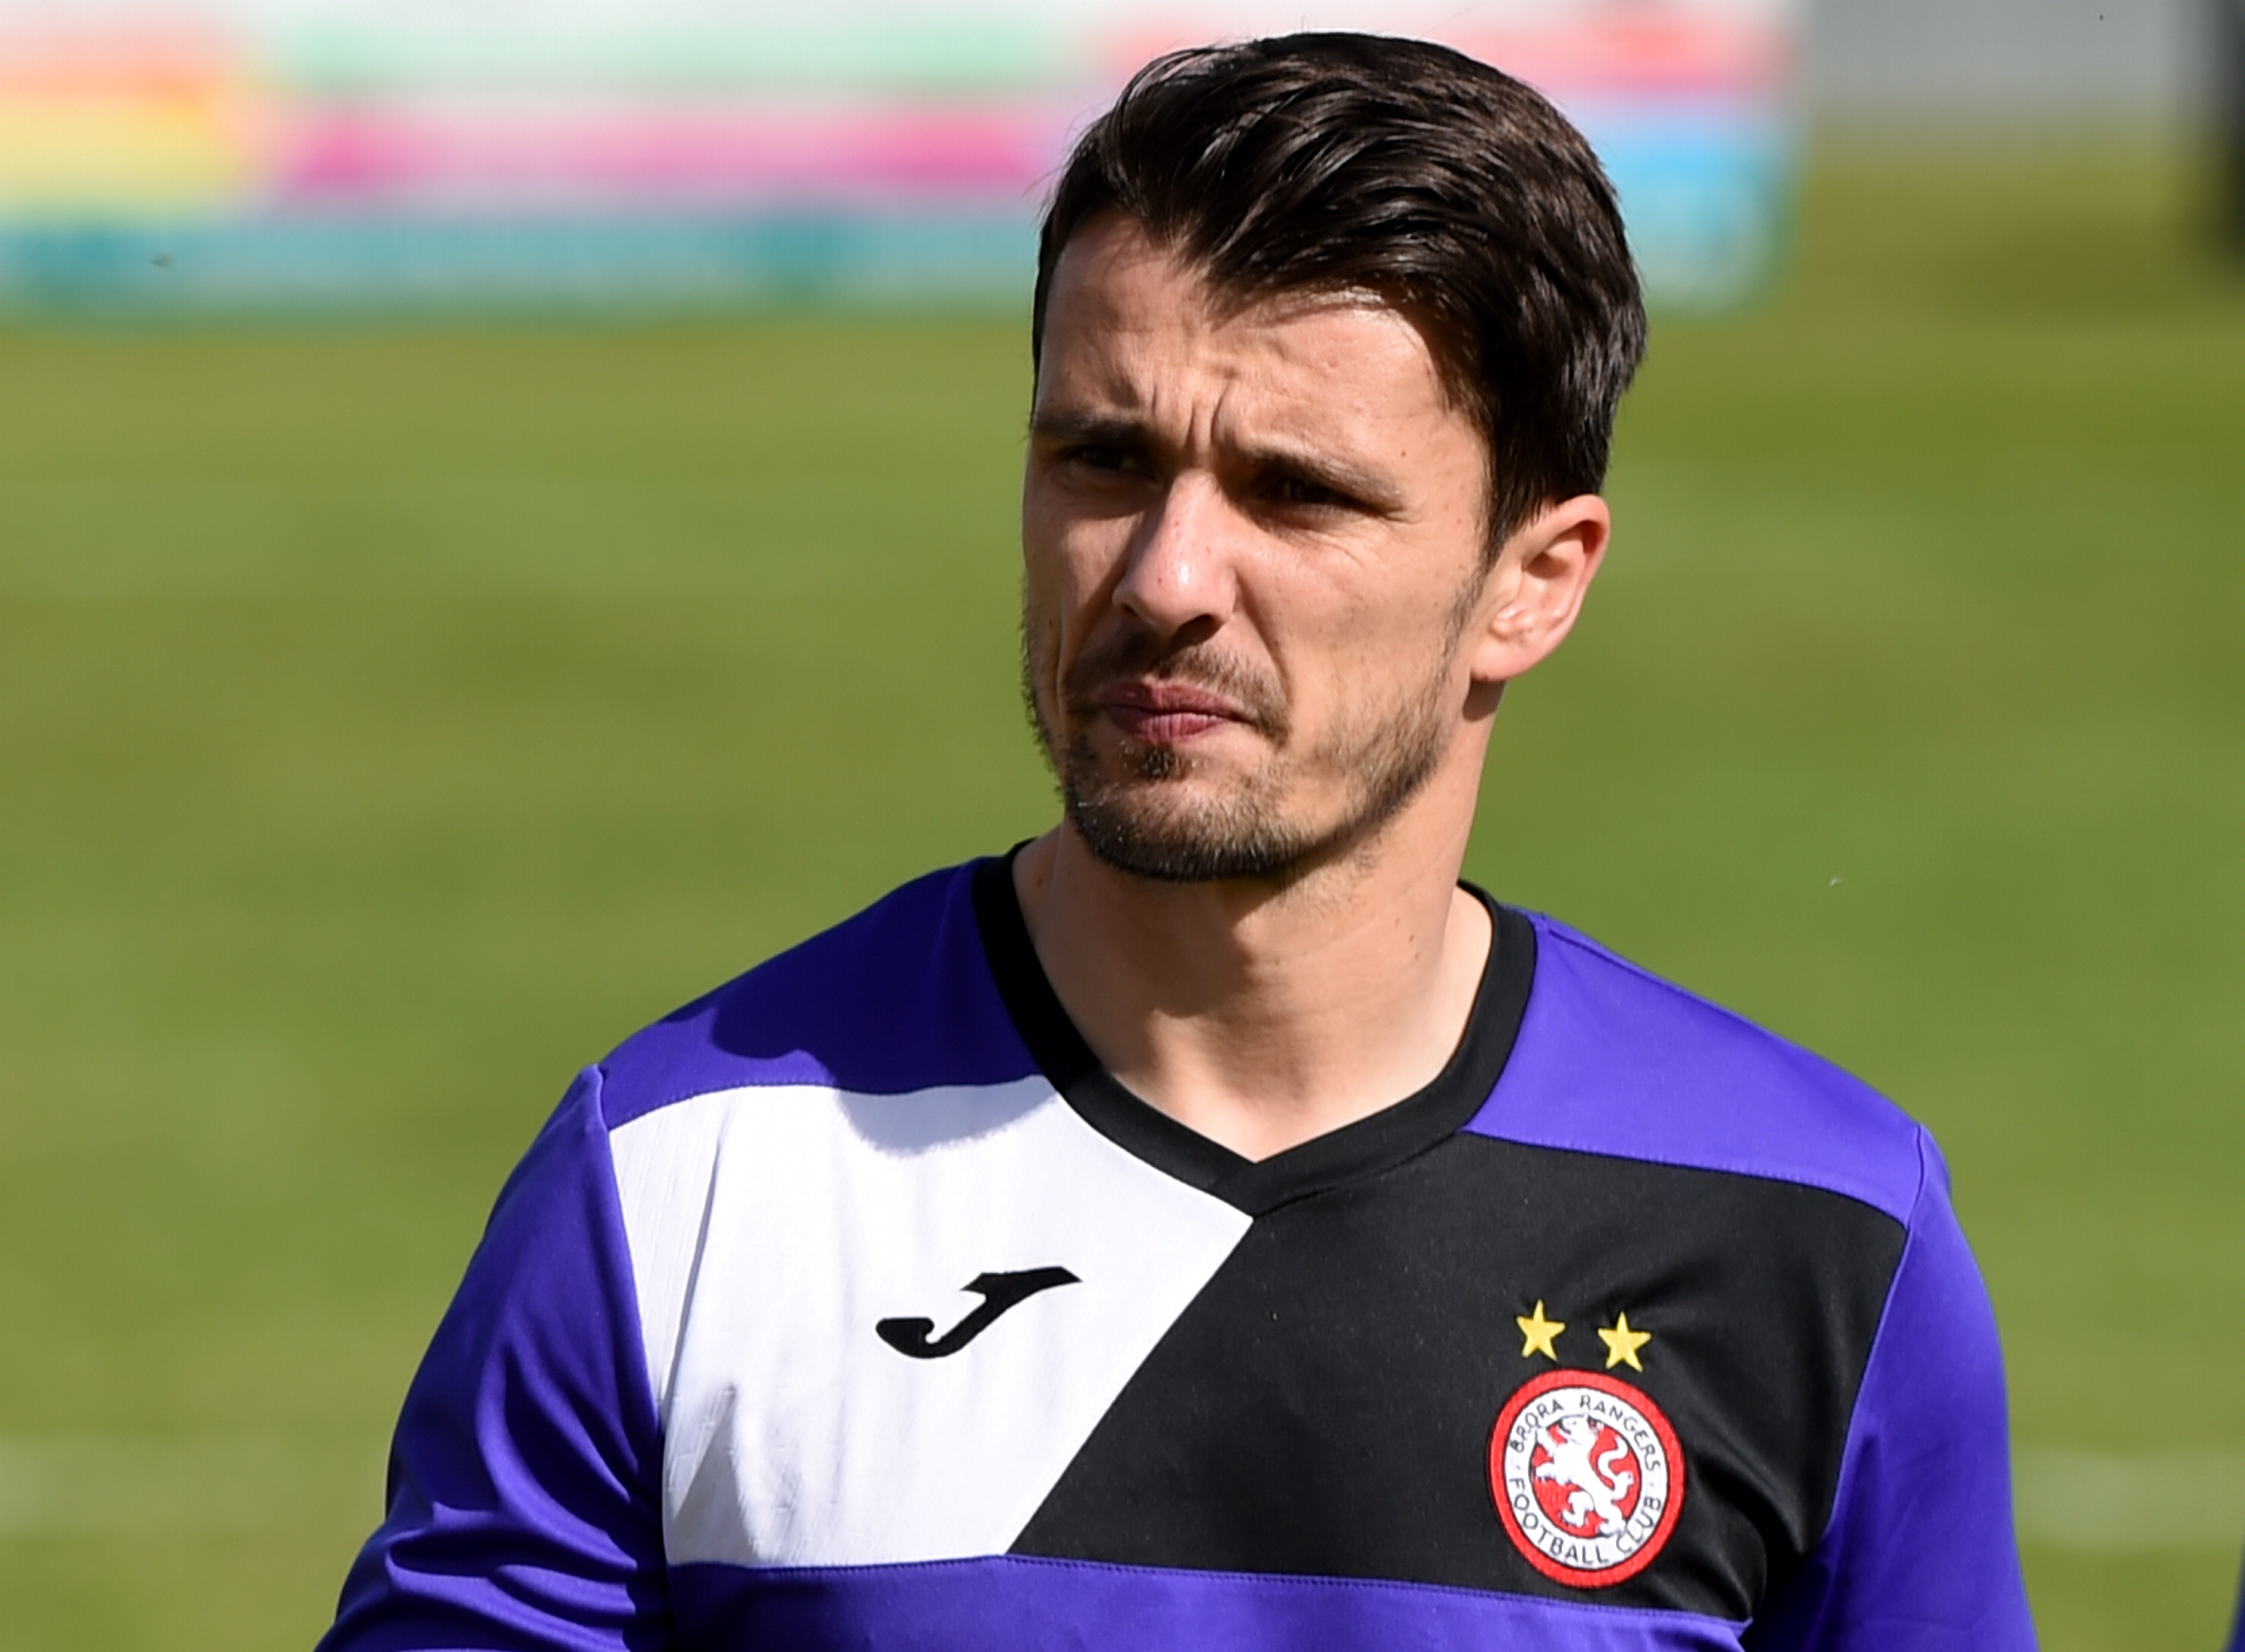 Brora Rangers will hope to win their replay and reach the fourth round.